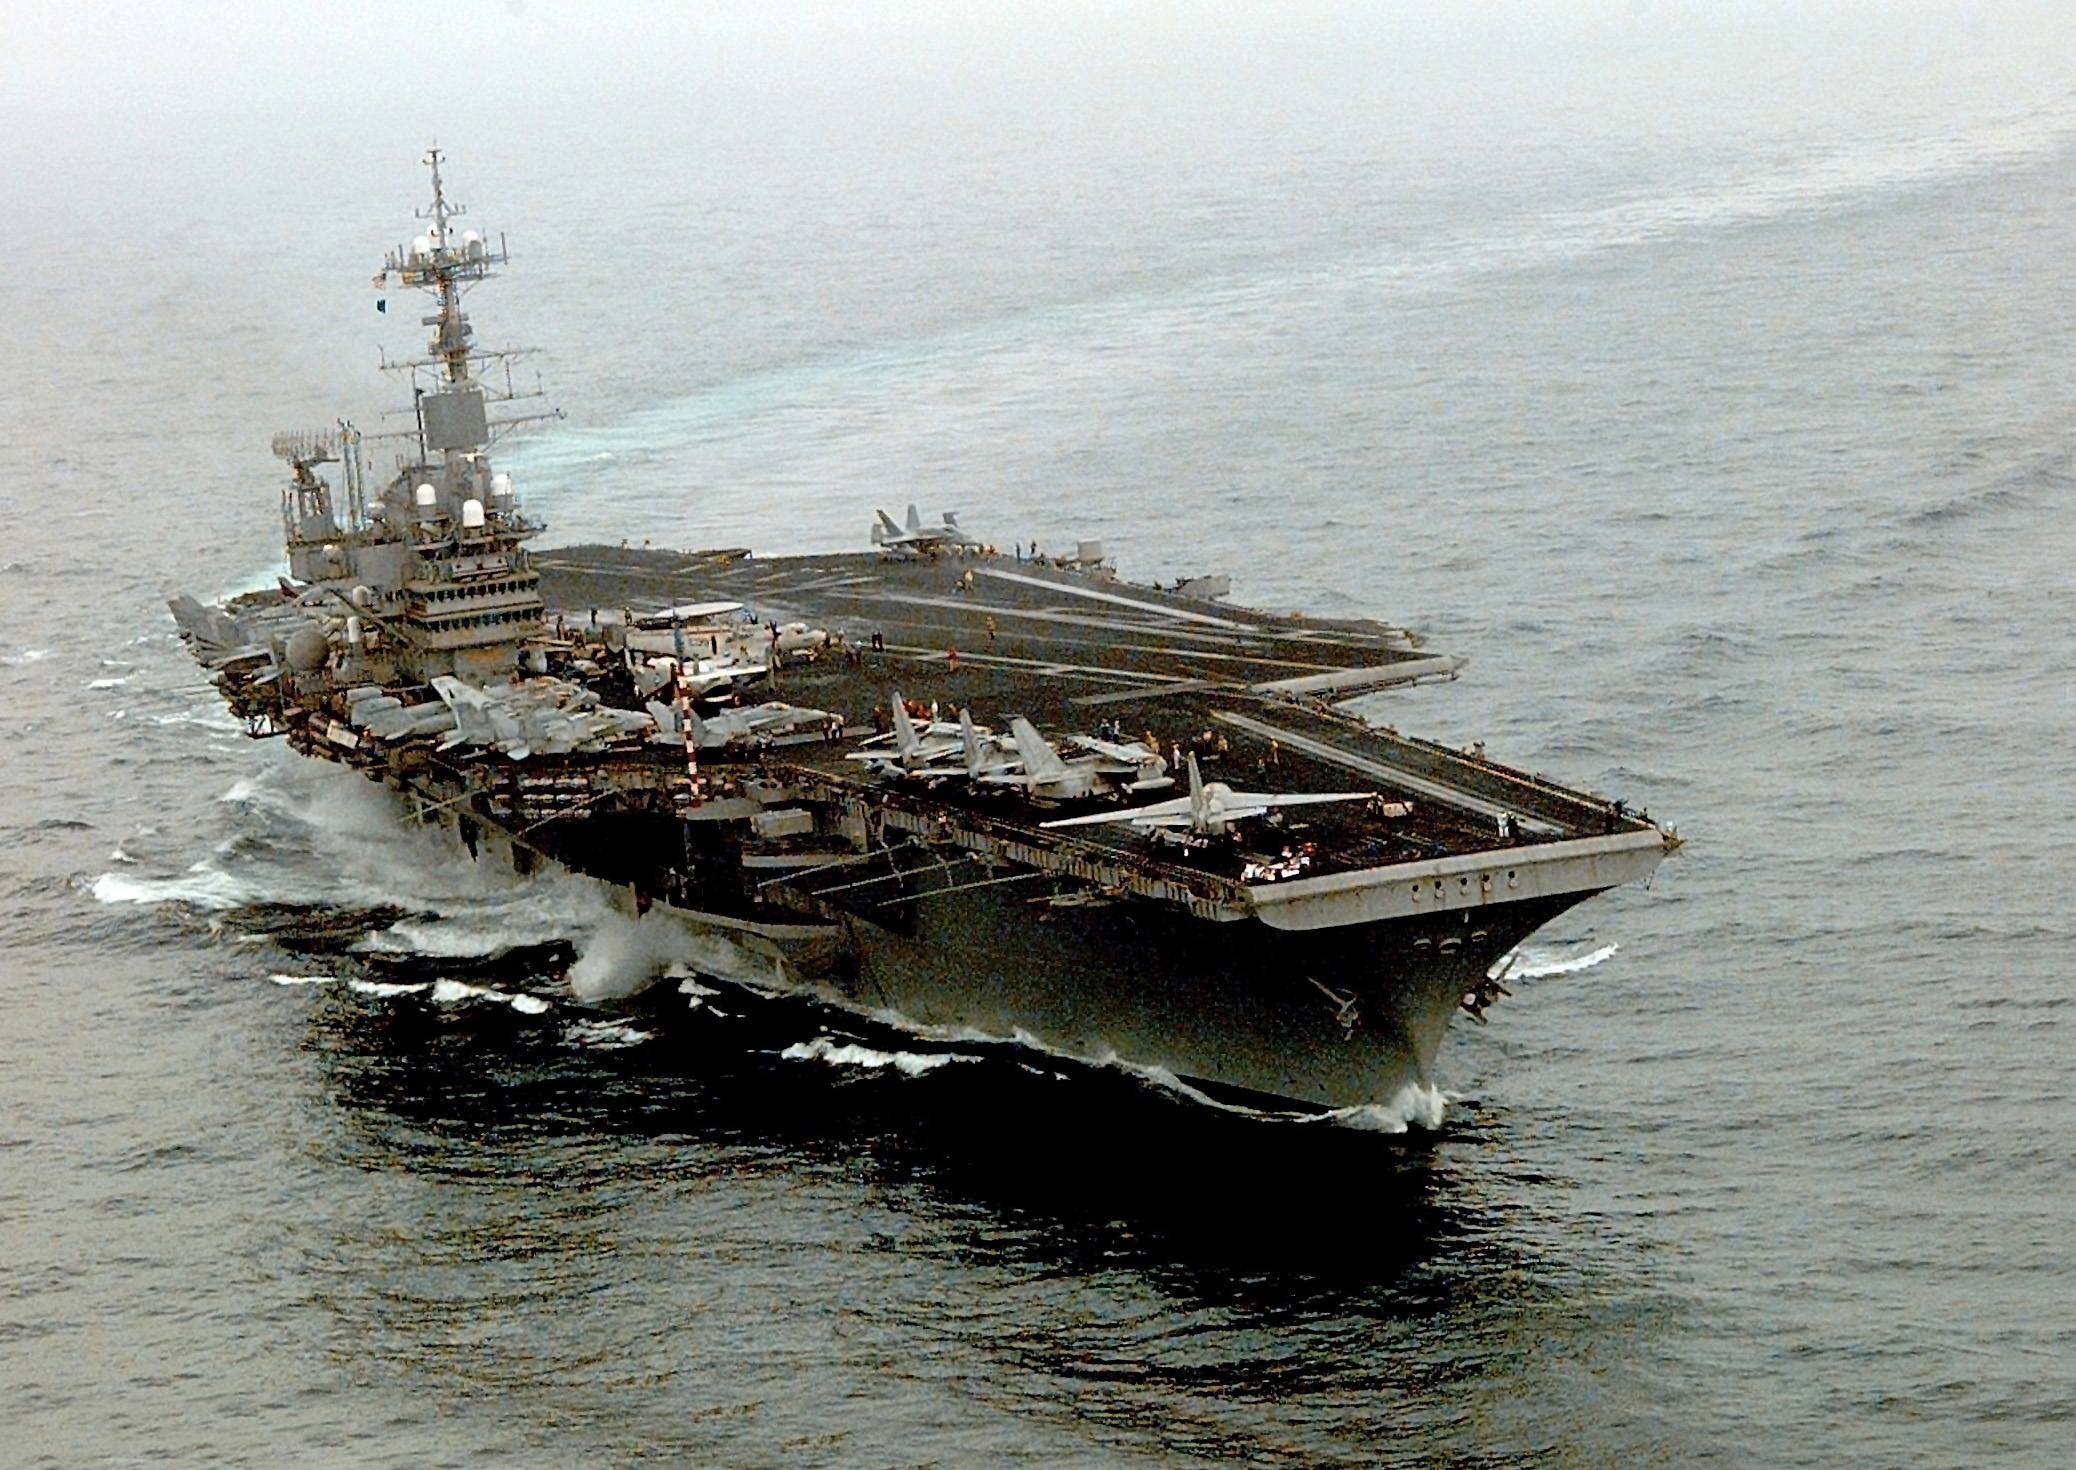 The U.S. Navy aircraft carrier USS INDEPENDENCE (CV 62) patrols the waters of the Persian Gulf in support of Operation Southern Watch